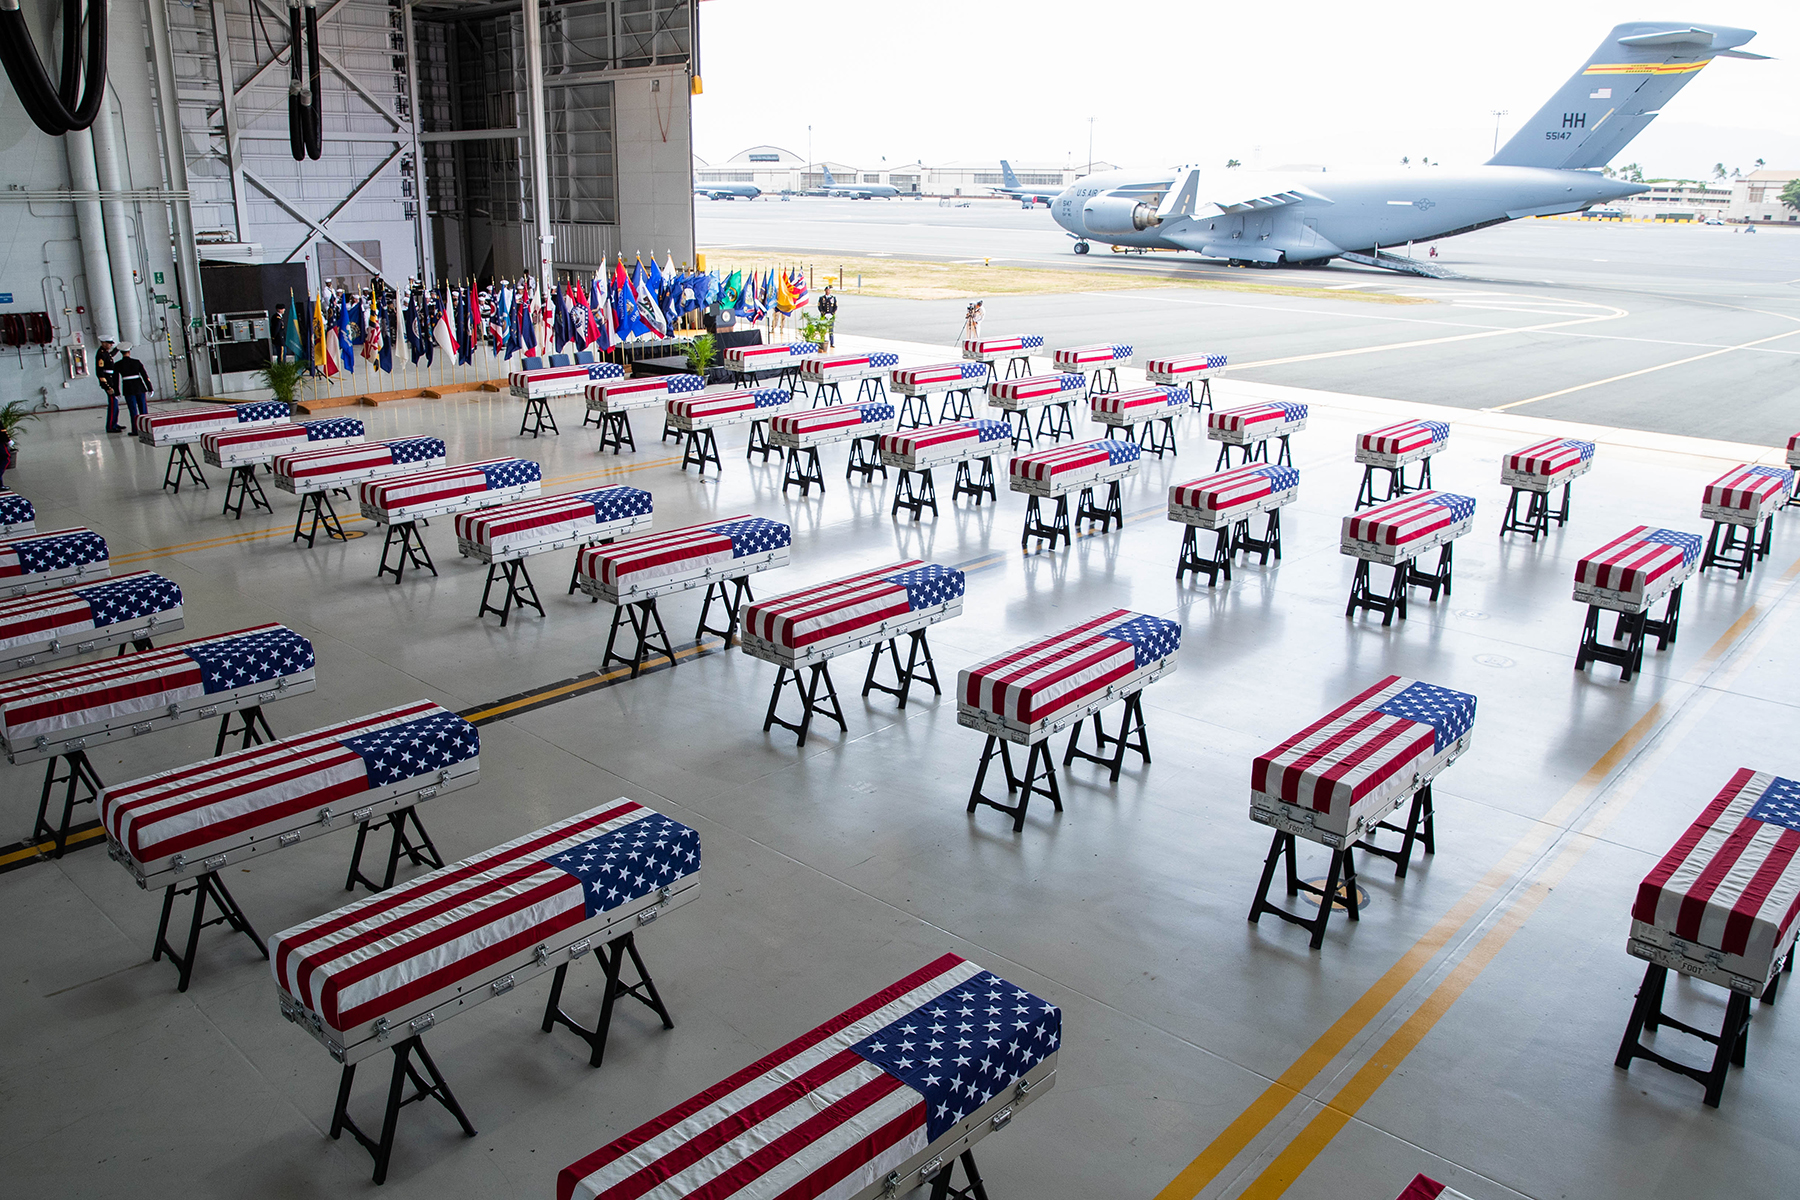 <p><strong>REPATRIATION:</strong> Fifty-five cases of remains — presumed to be U.S. soldiers killed in the Korean War — arrived from North Korea at Joint Base Pearl Harbor-Hickam Aug. 1. Work to identify the remains began almost immediately. / Anthony Quintano</p>